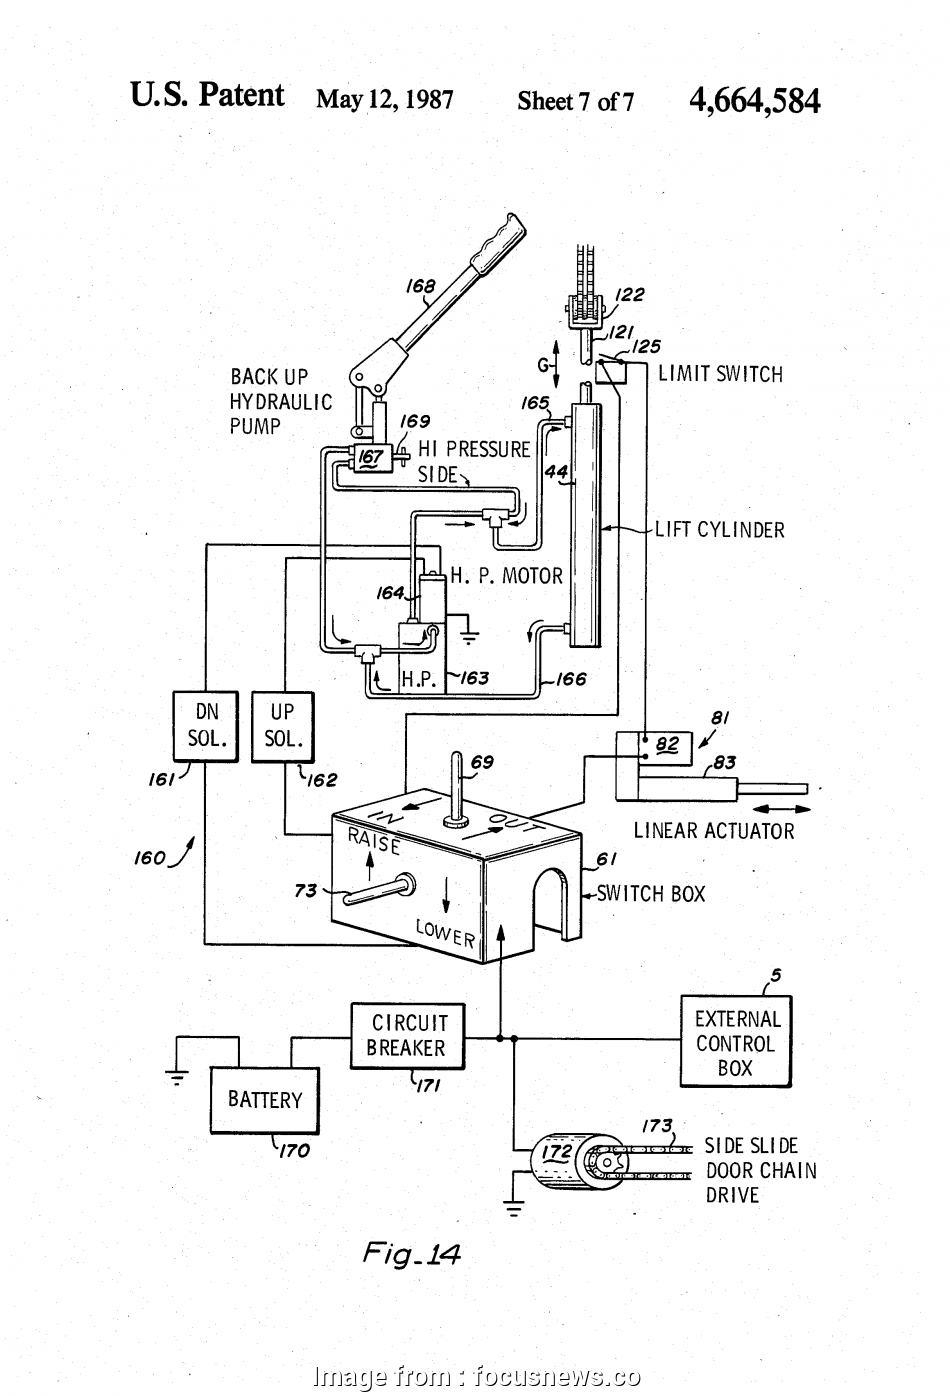 Wiring A Rotary Switch New Diagram Rotary Lift Switch